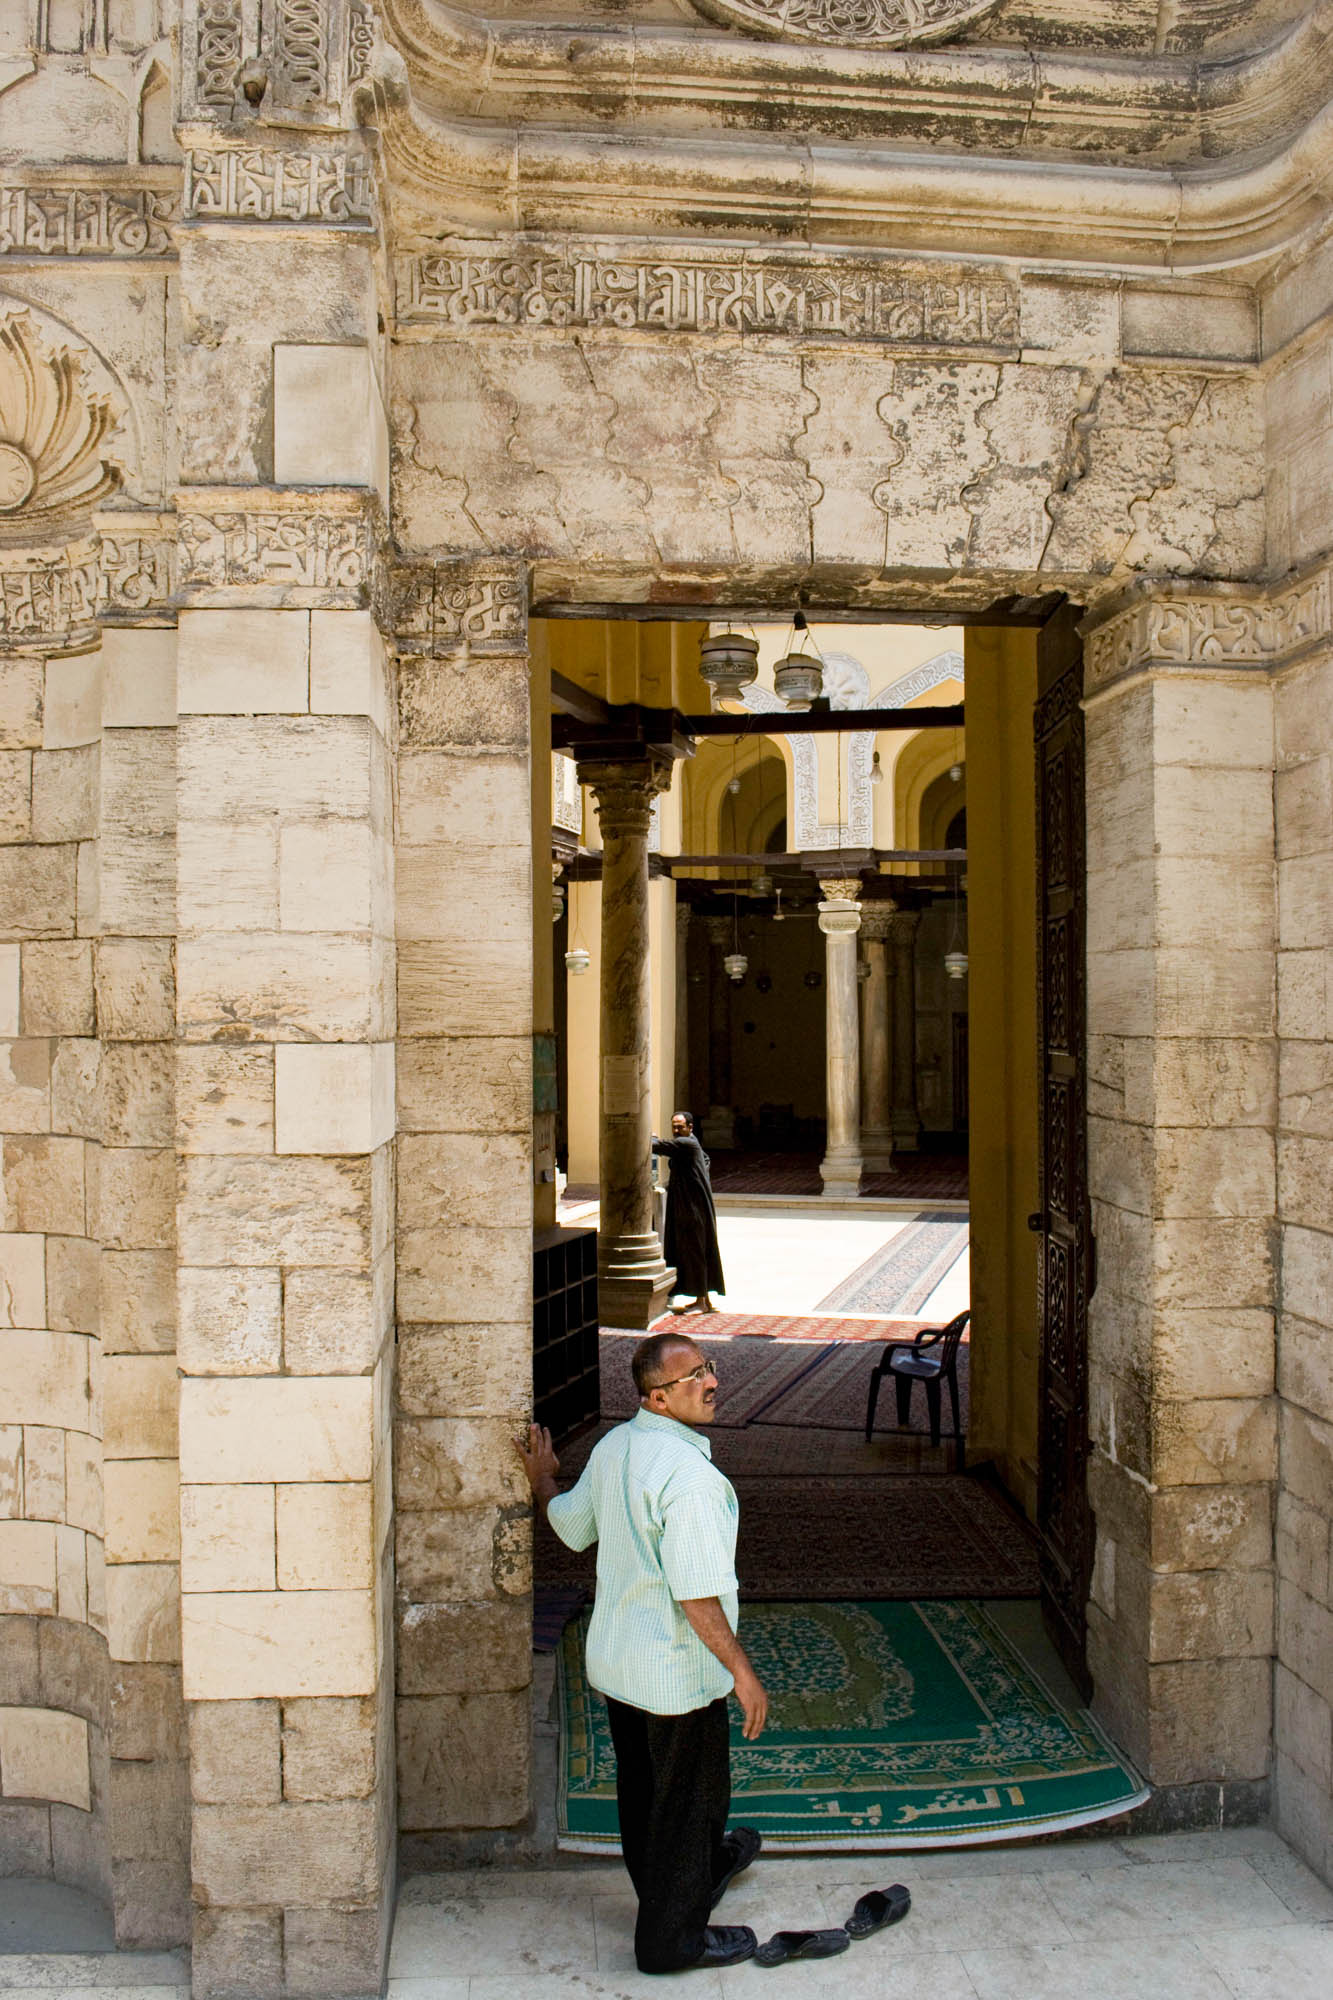 a man removes his shoes before entering a mosque to pray in Cairo, Egypt